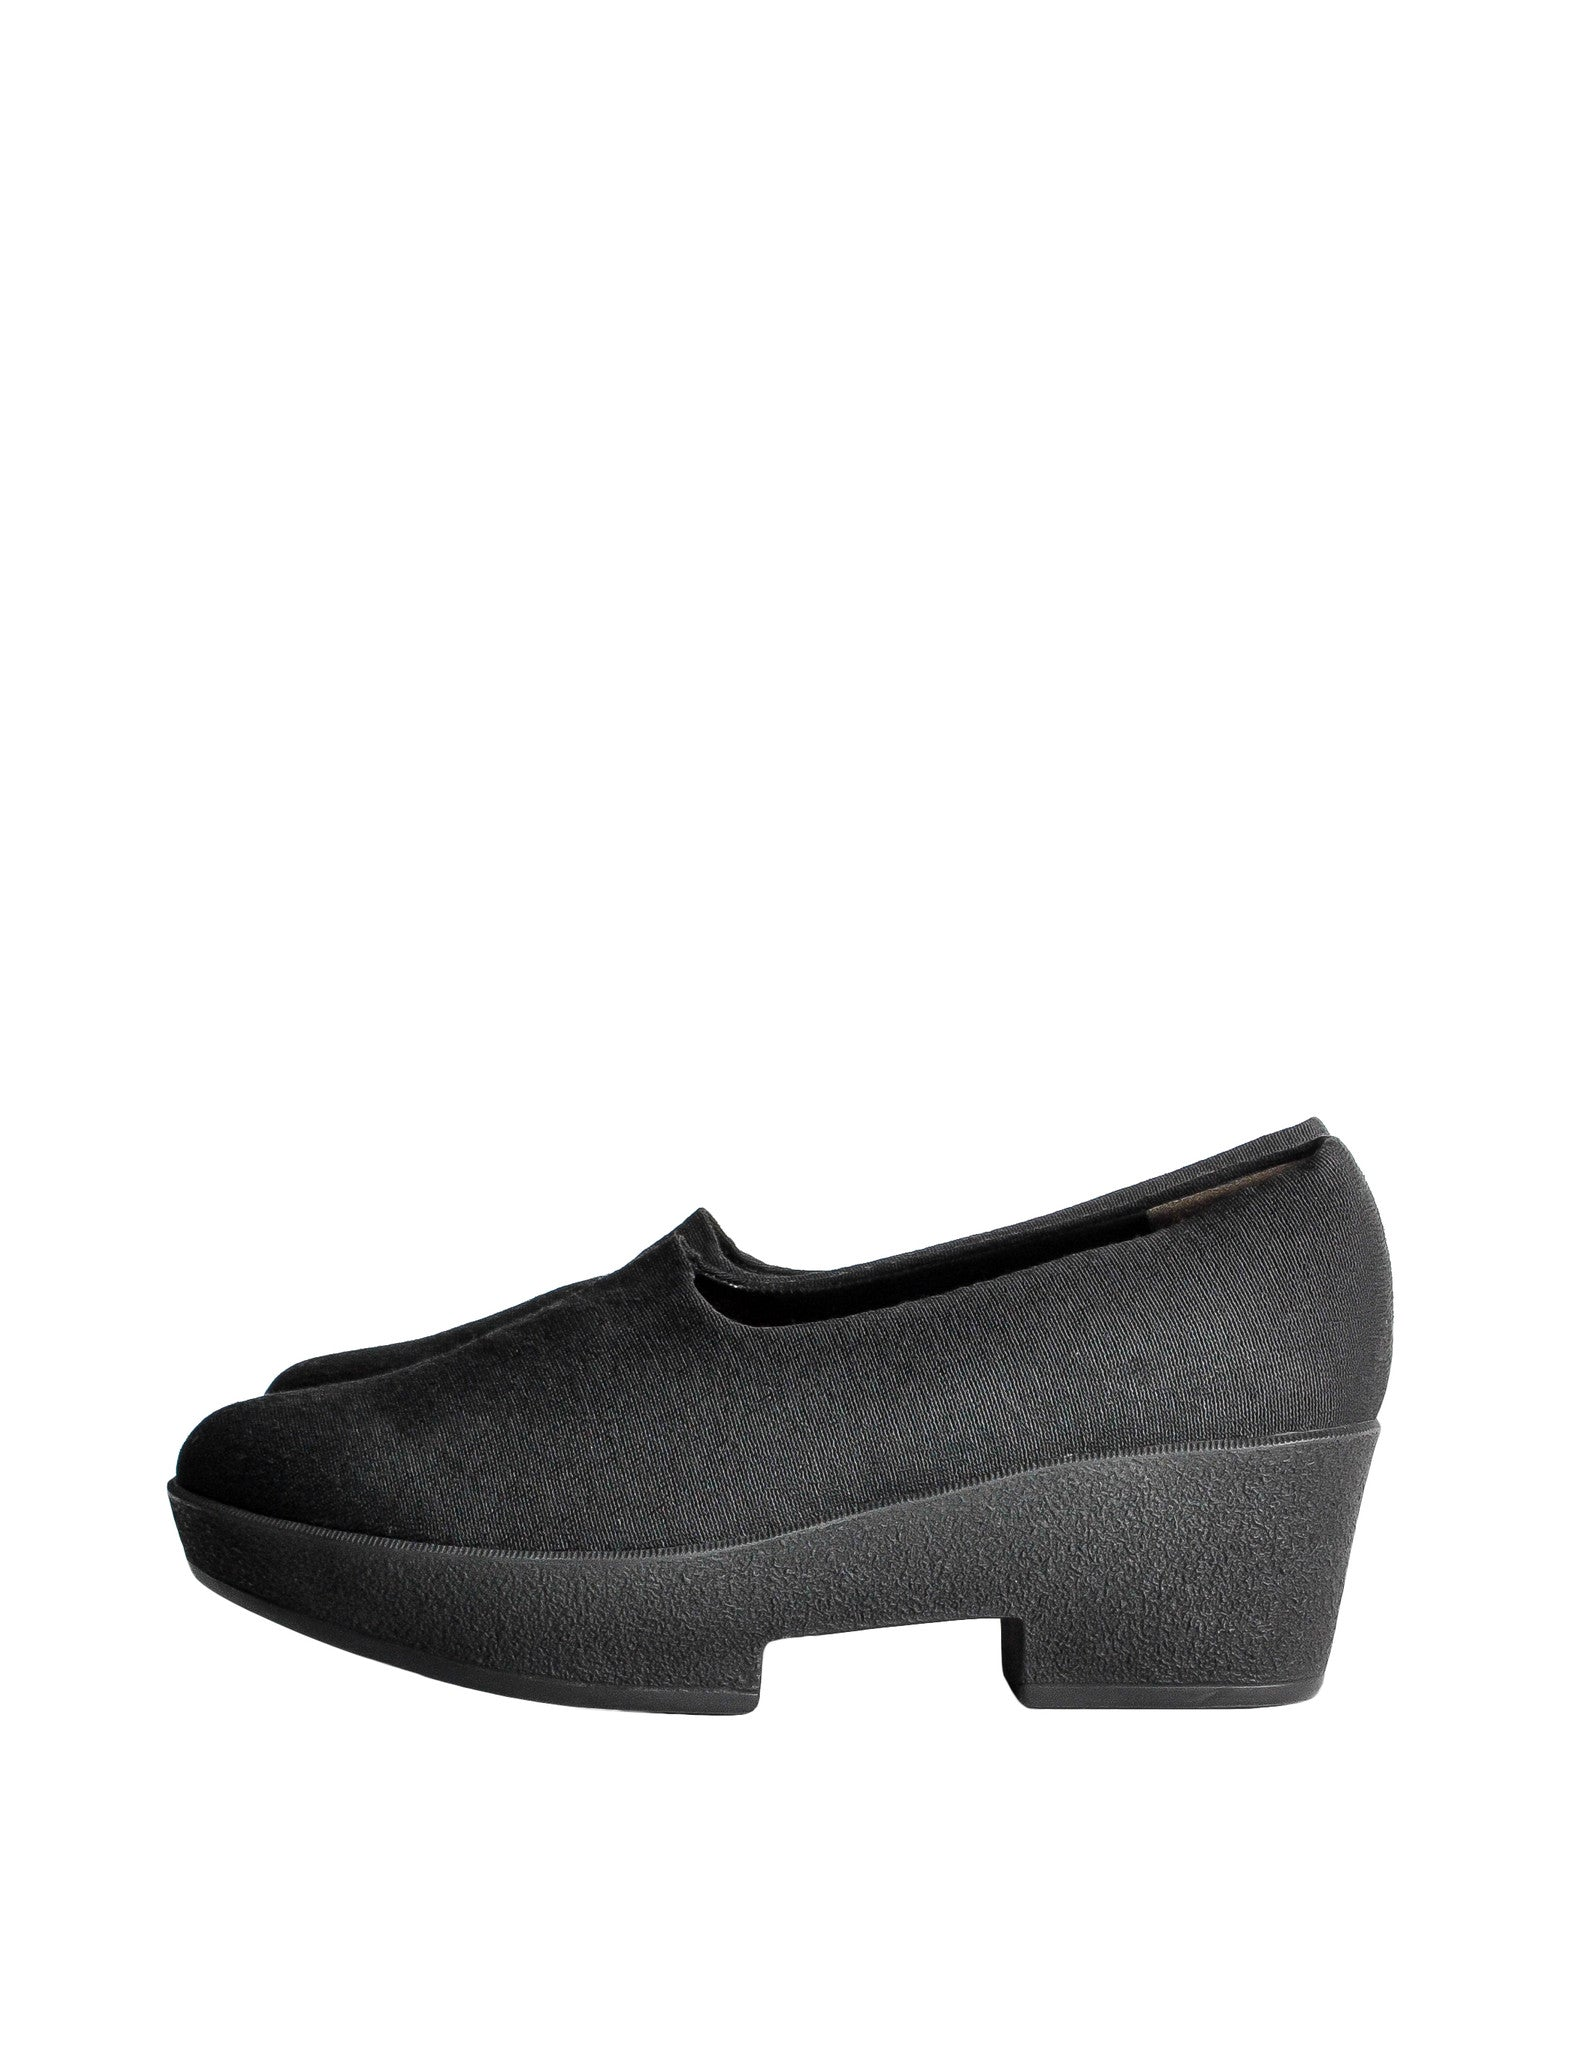 Robert Clergerie Vintage 'Vigny' Black Stretch Platform Shoes - Amarcord Vintage Fashion  - 1